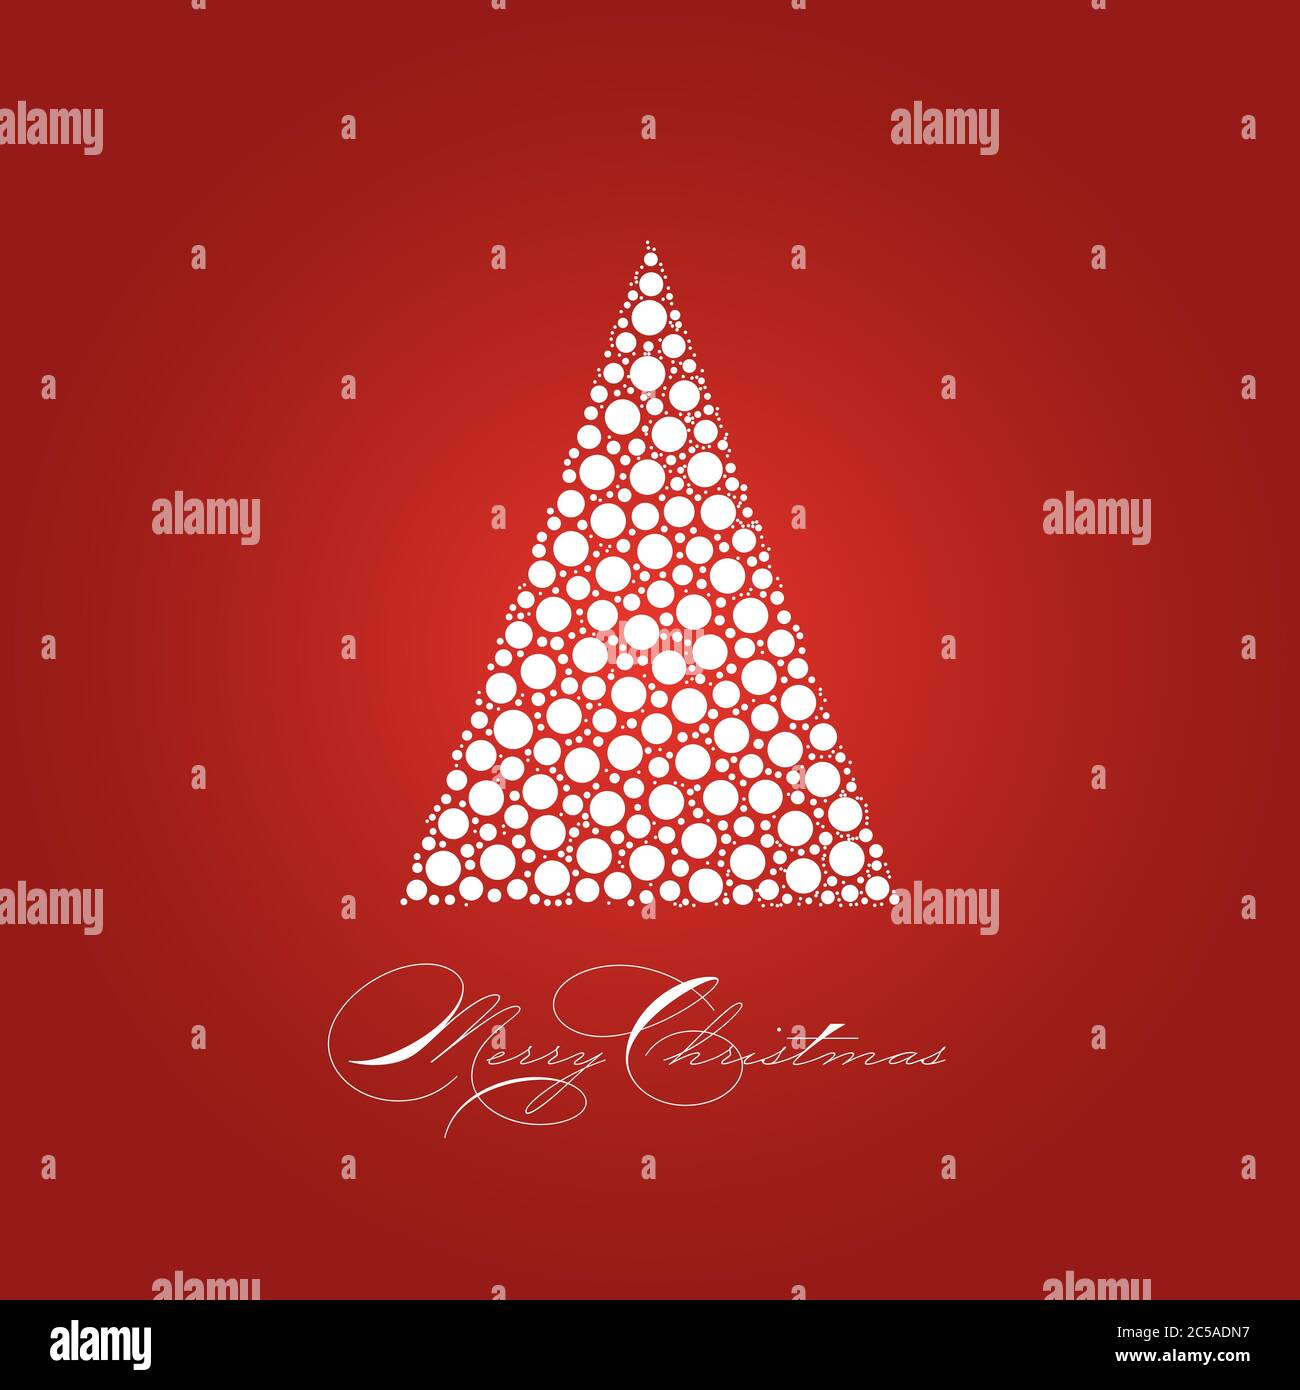 Holiday Card Theme With Dotted Snowy White Christmas Tree On Red Background And Label Merry Christmas Simple Elegant And Modern Vectror Illustration Stock Vector Image Art Alamy